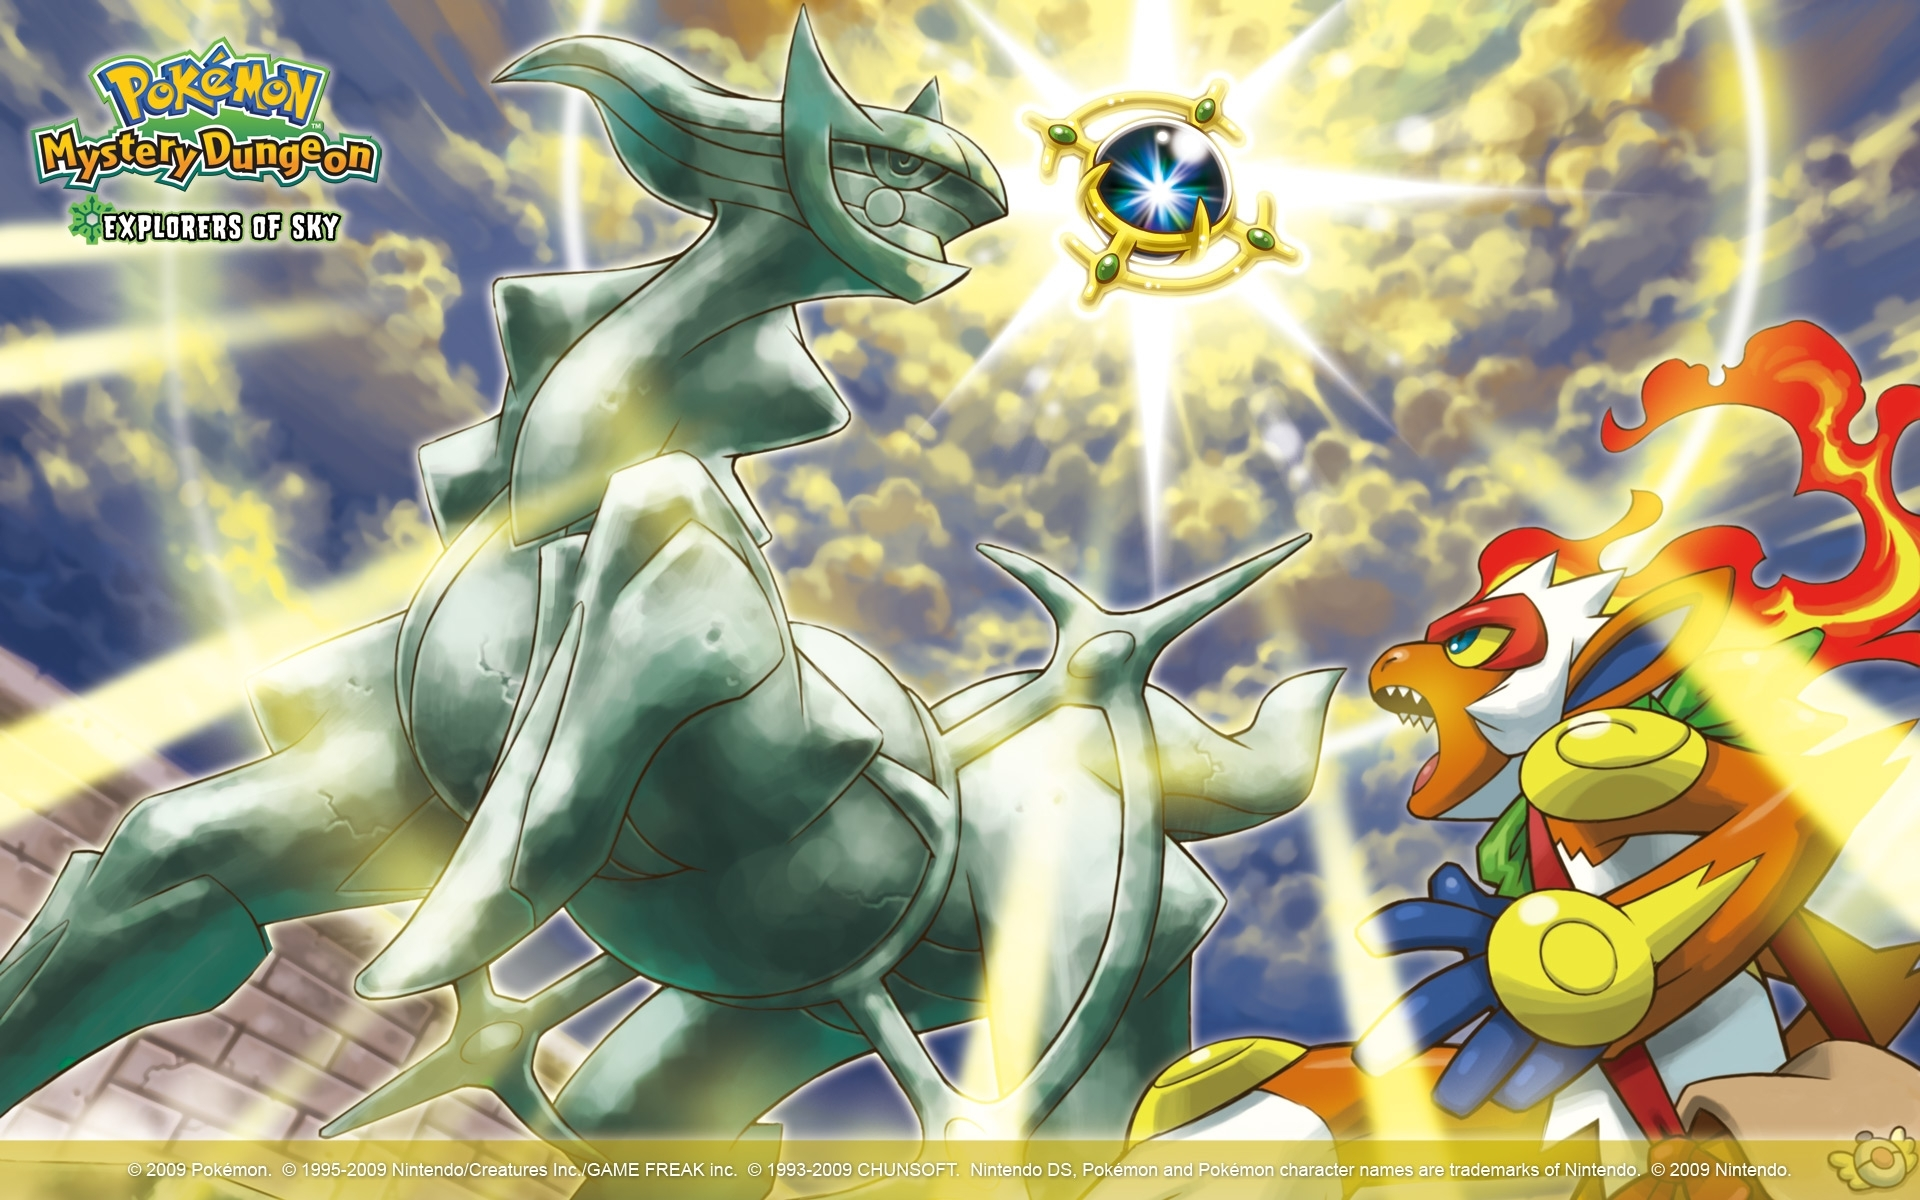 pokémon mystery dungeon: explorers of sky full hd wallpaper and